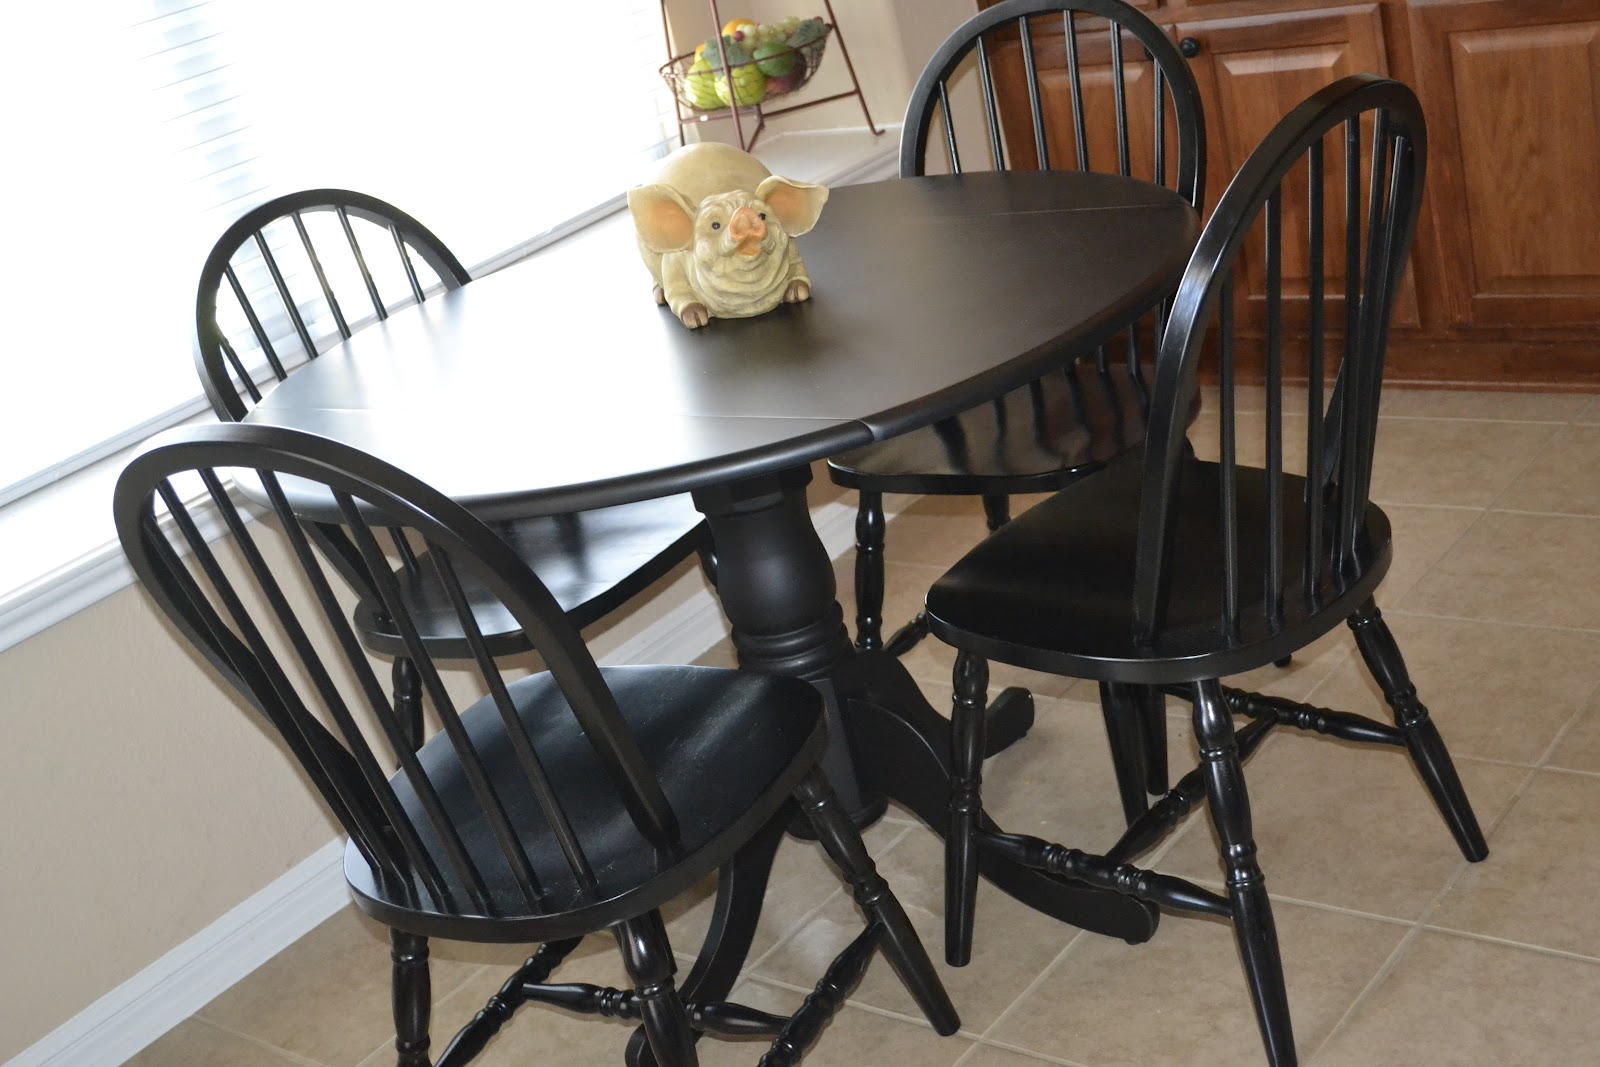 Magnificent black round kitchen table sets 1600 x 1067 · 220 kb · jpeg